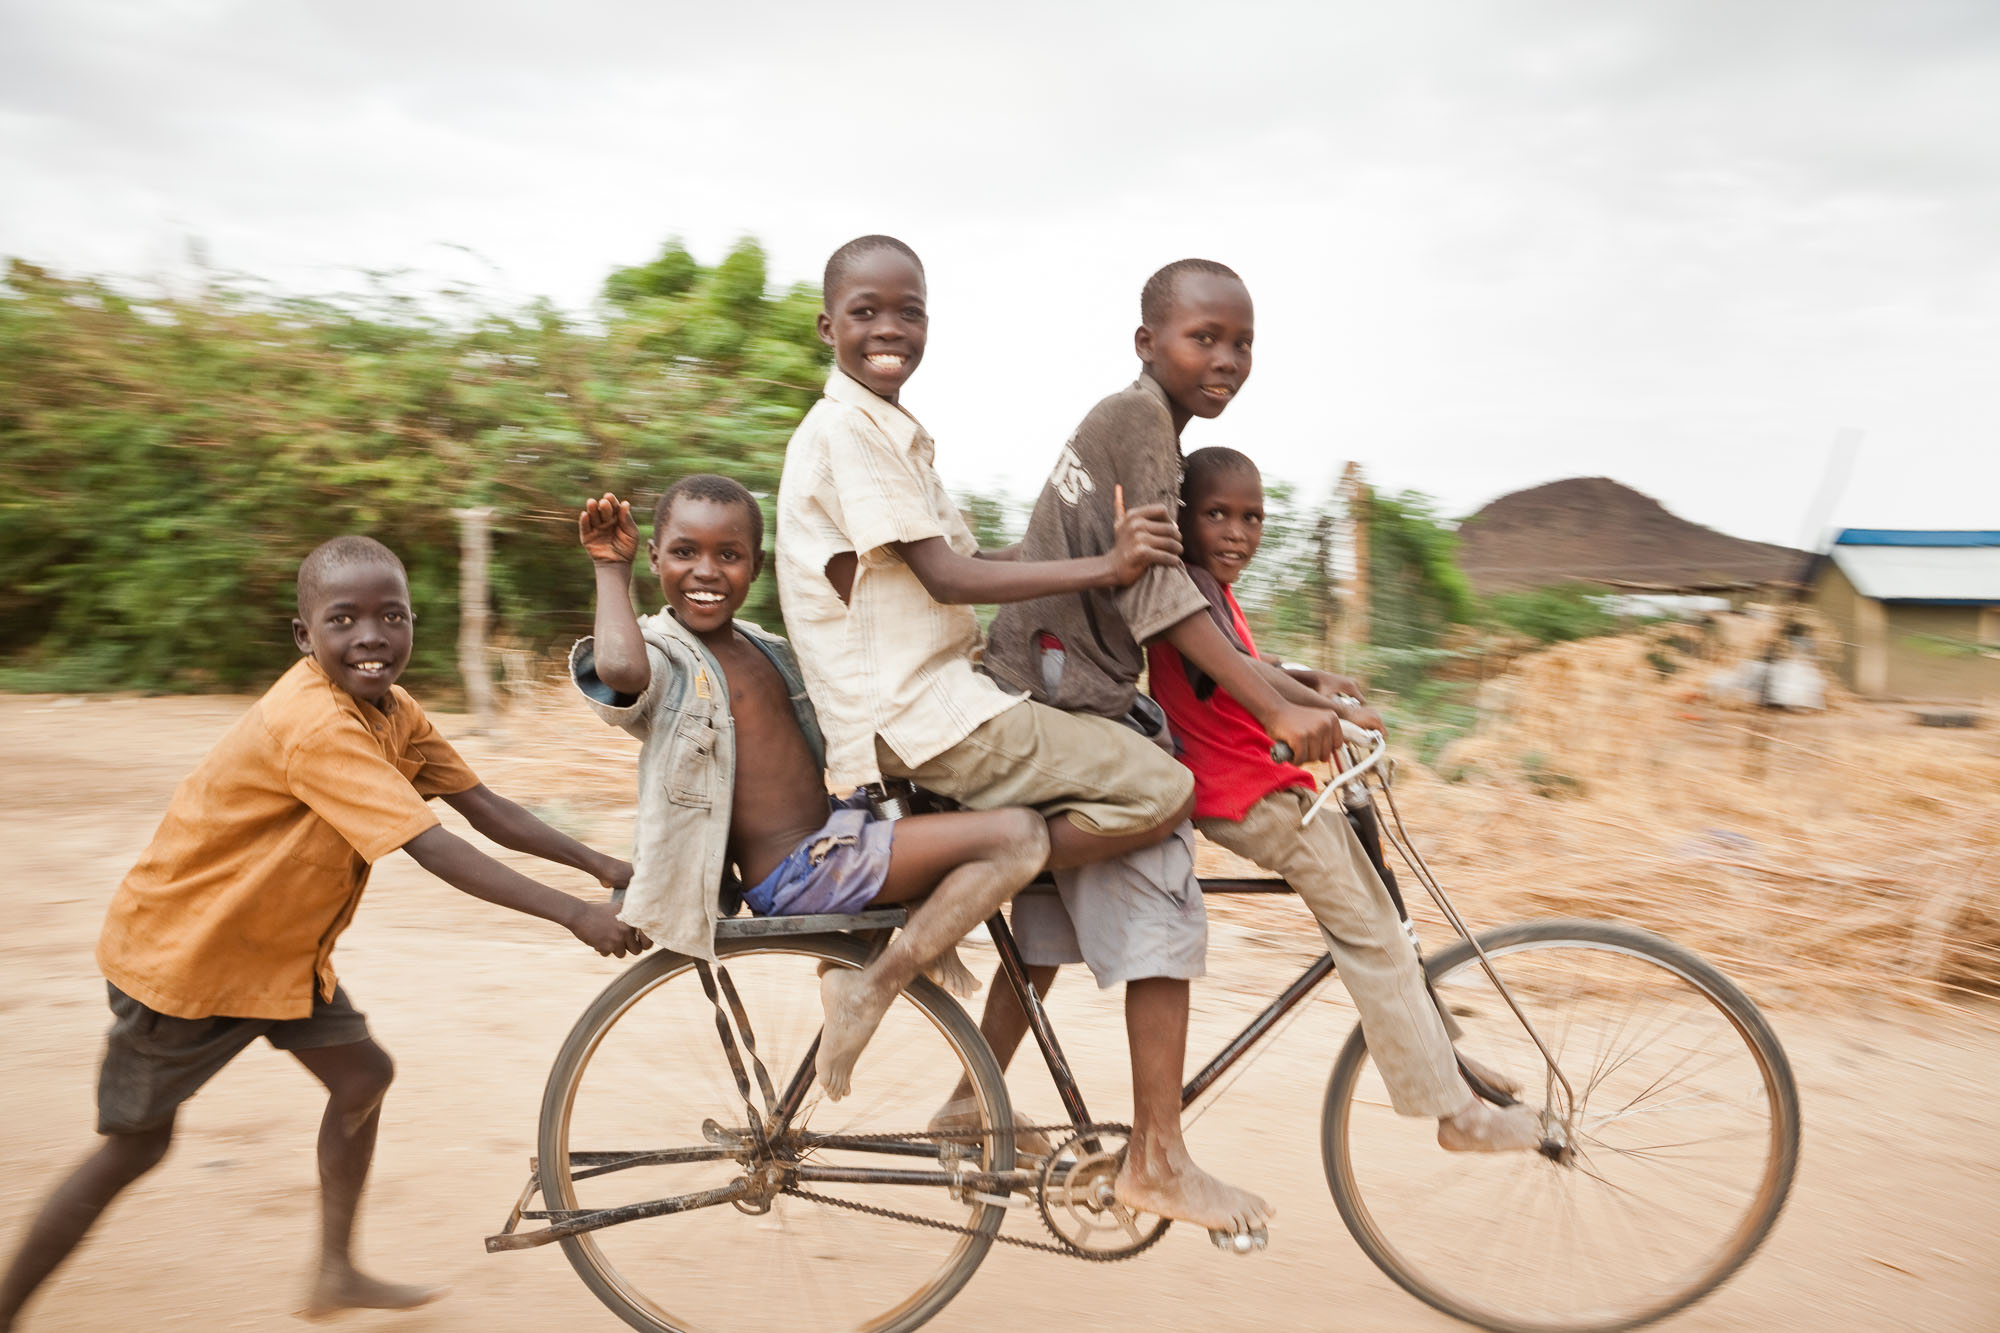 Children play together on a bicycle in Lodwar, Kenya.